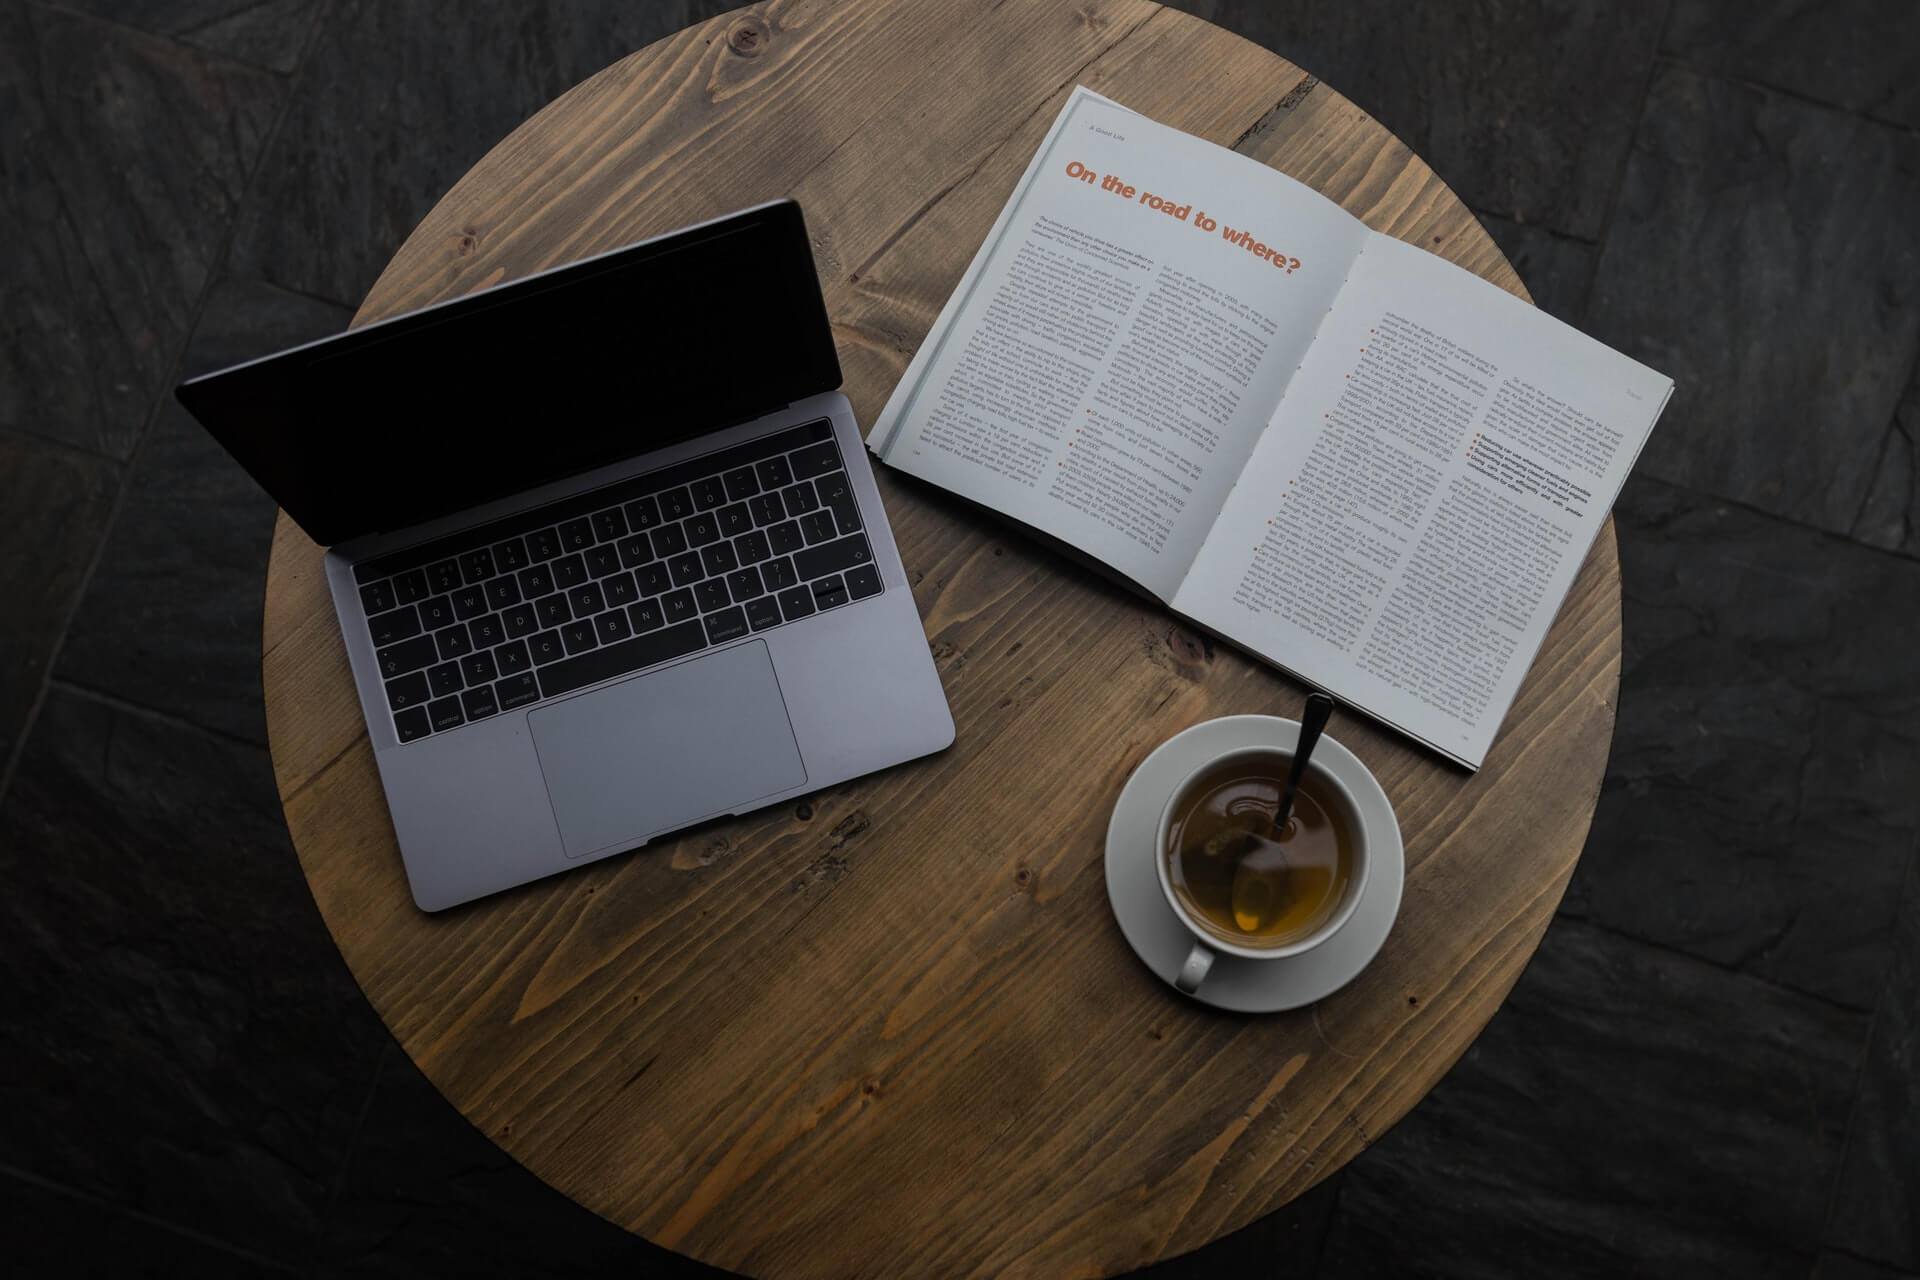 10 Facts About Digital Magazine Publishing and One Important Piece of Advice